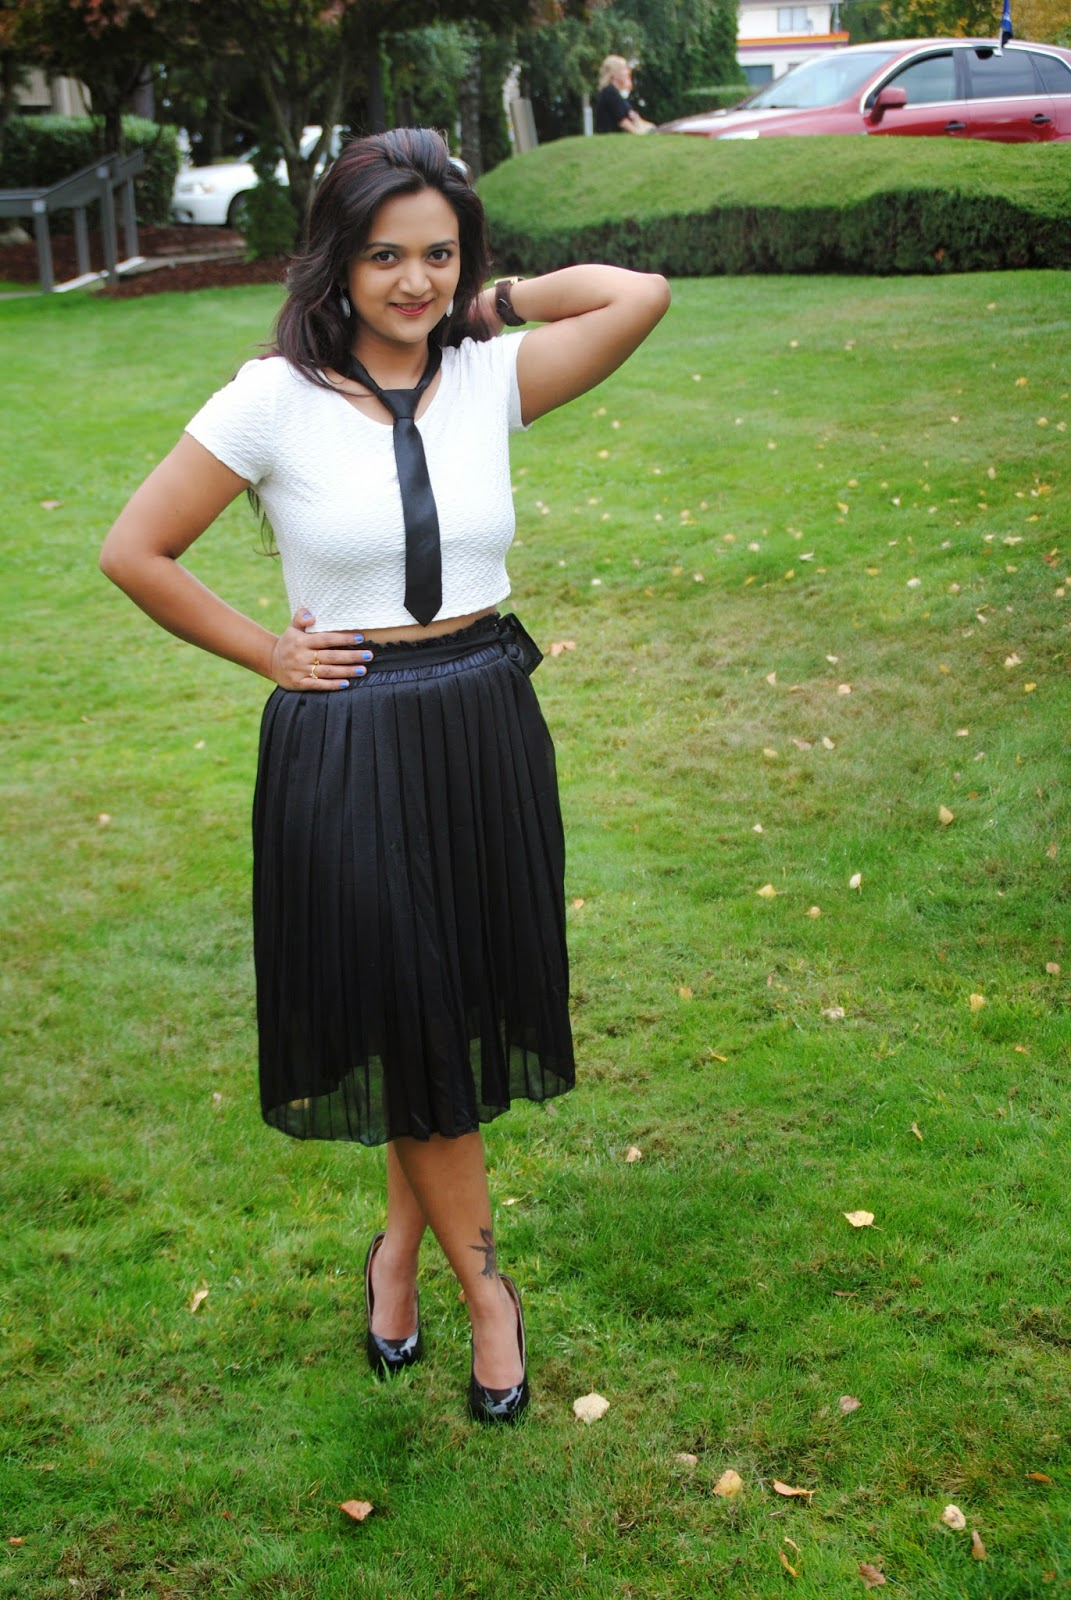 How to style a black skirt in different wyas, Ananya in a skirt, Ananya Kiran, Styling tips for Indian Women, Black skirt with white top, style tips for fall